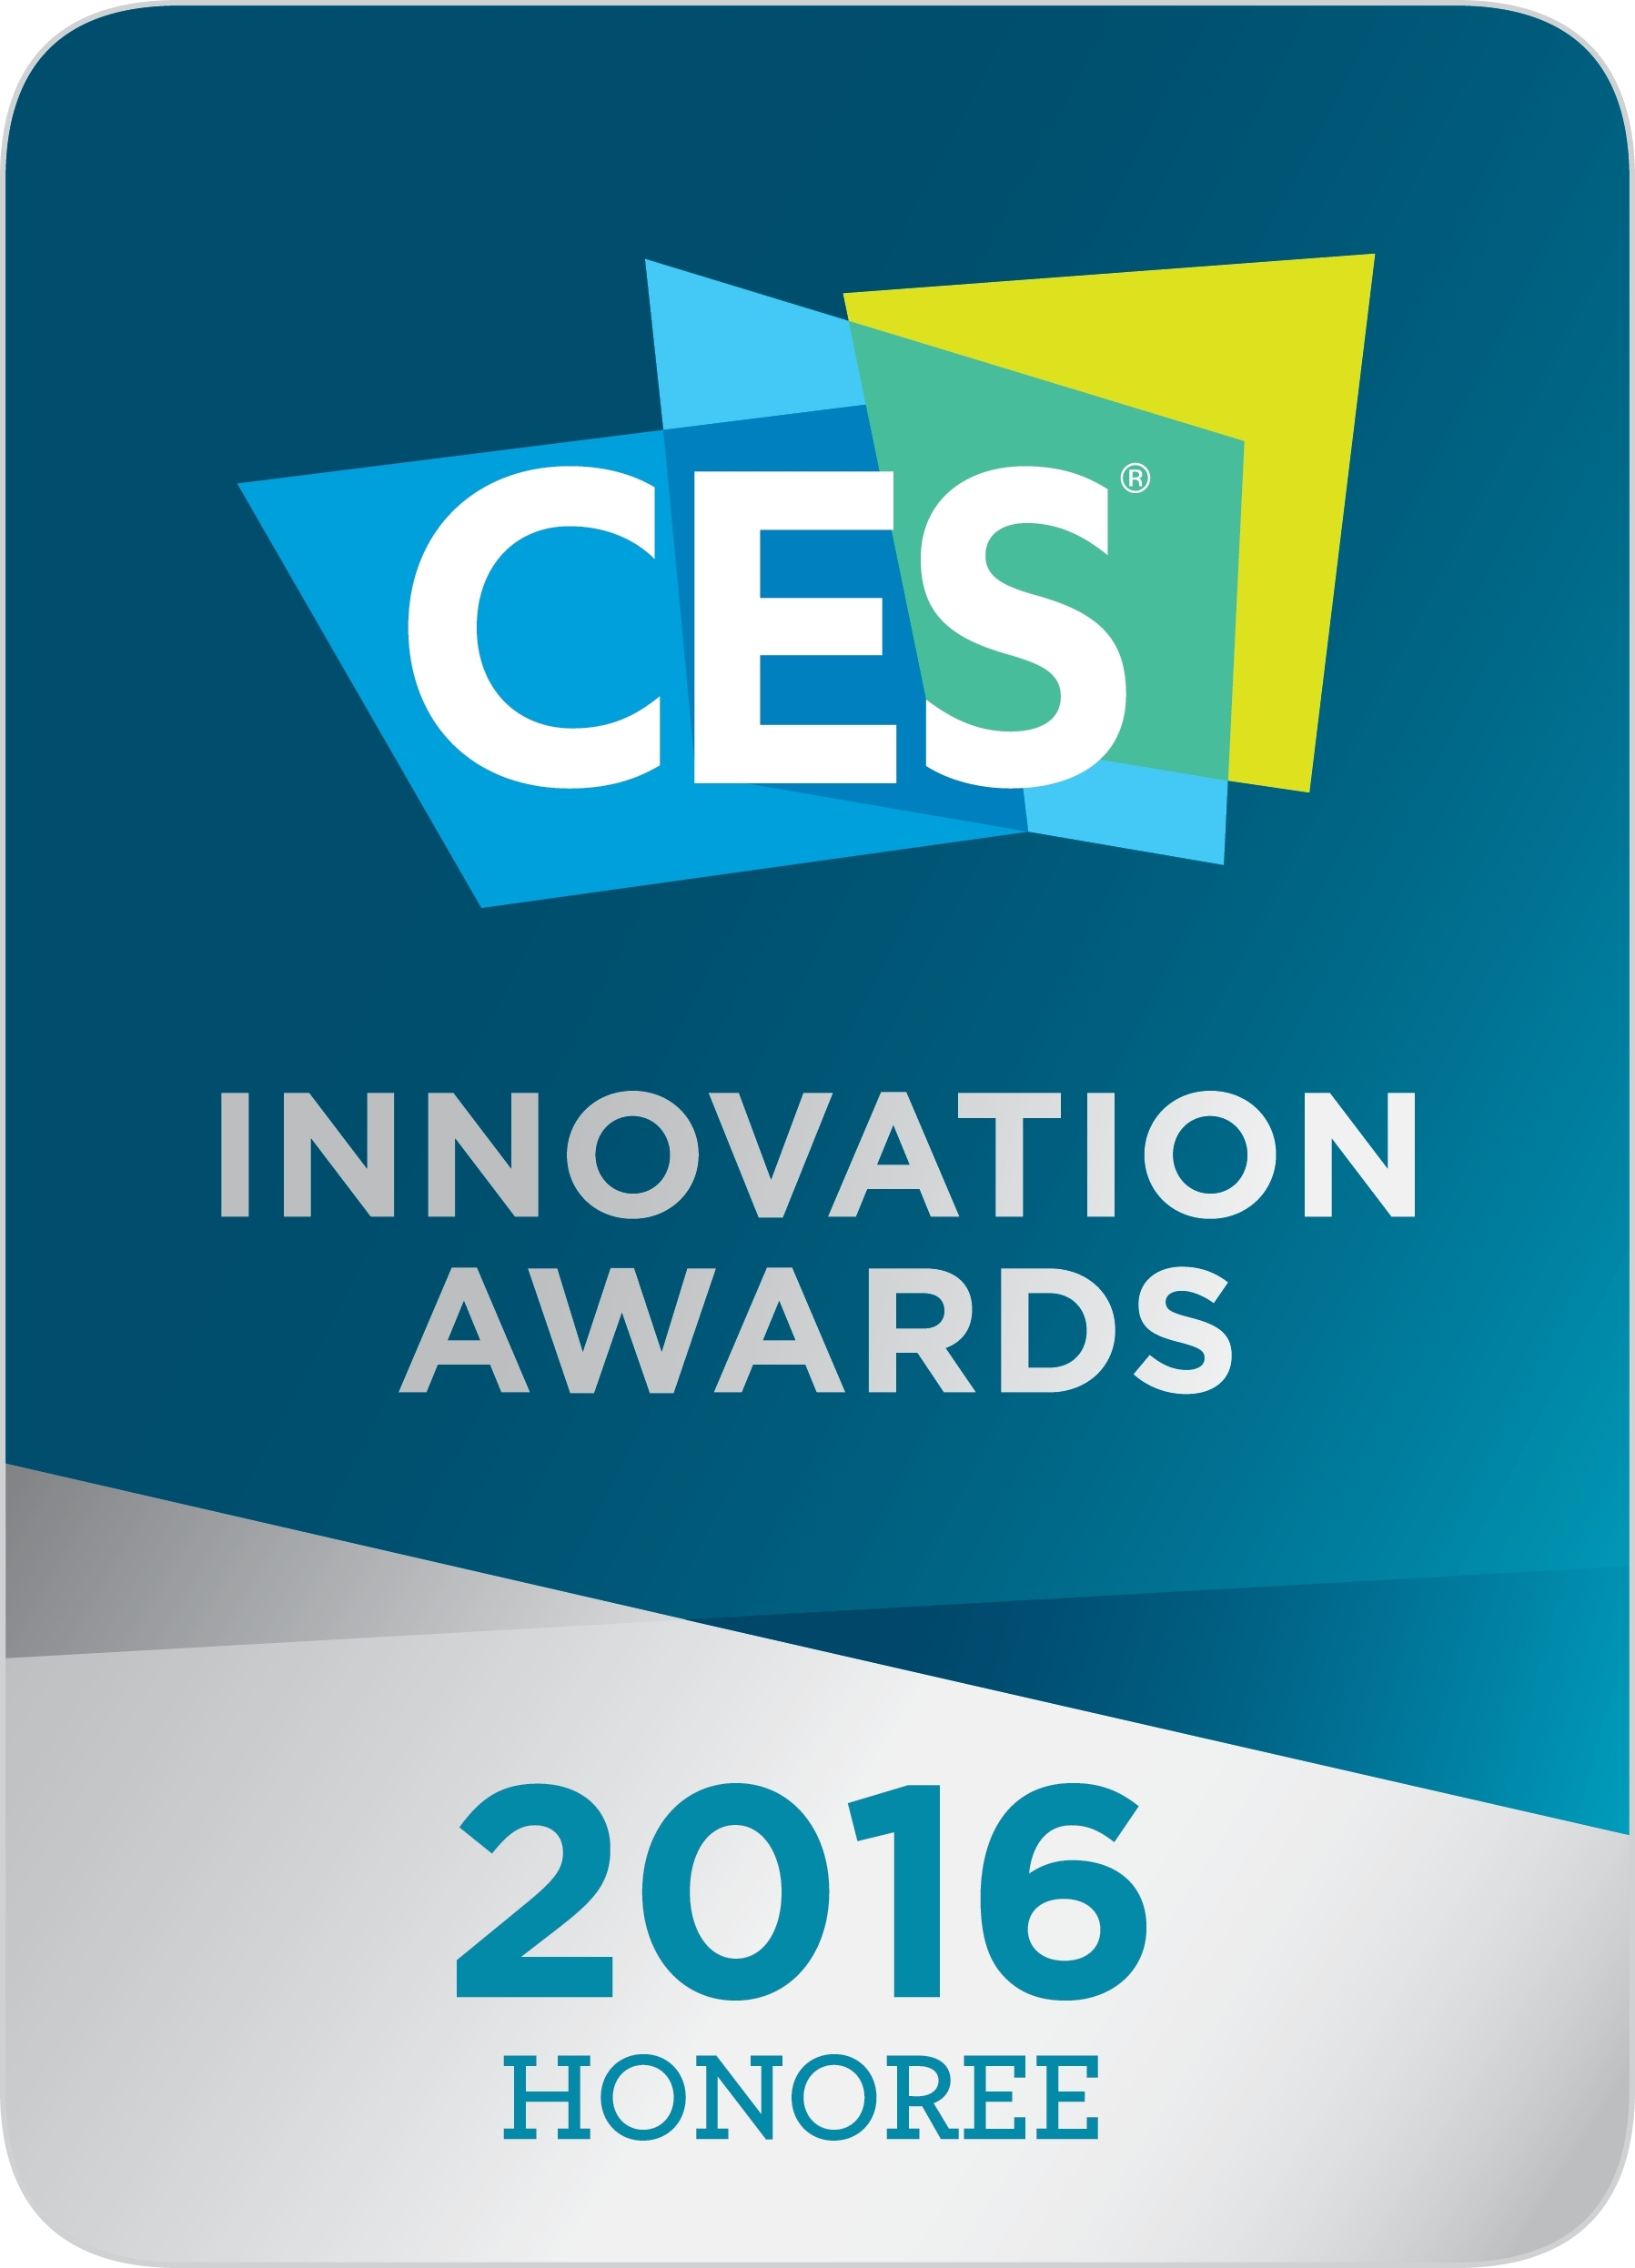 CES_InnovationAwards_2016Honoree-1797x2493